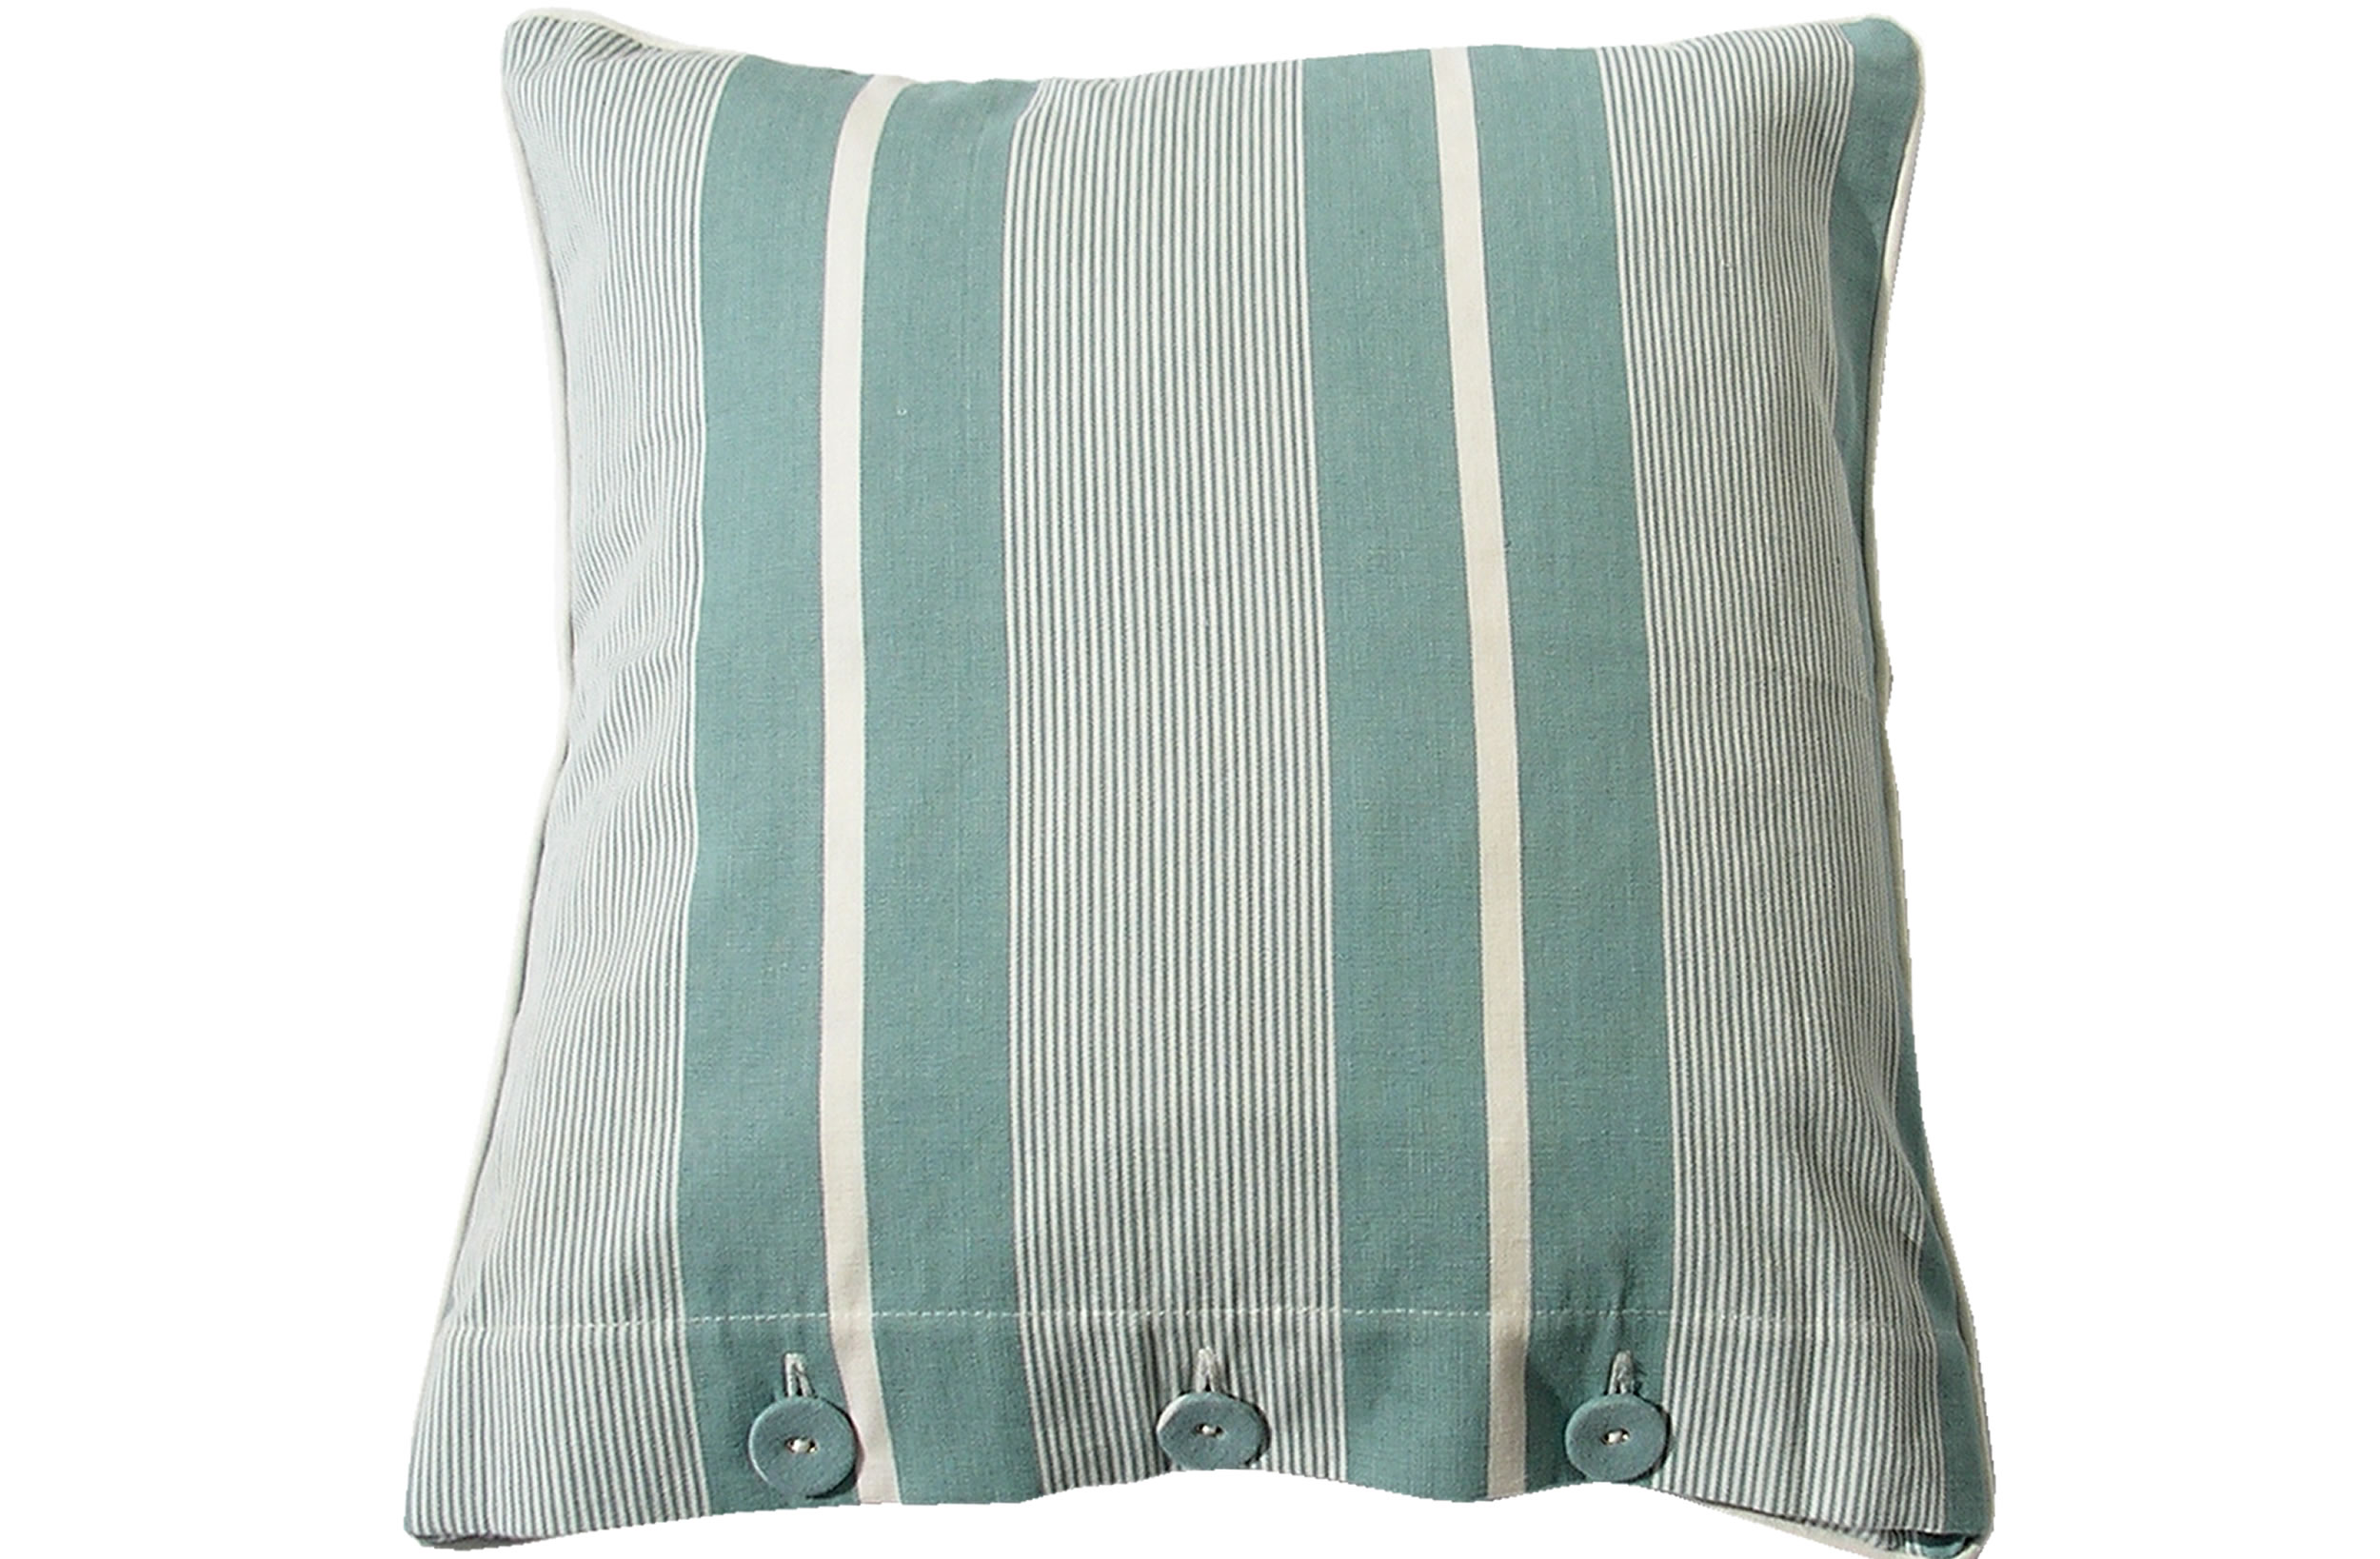 Teal Striped Button Cushions | Piped Buttoned Cushions